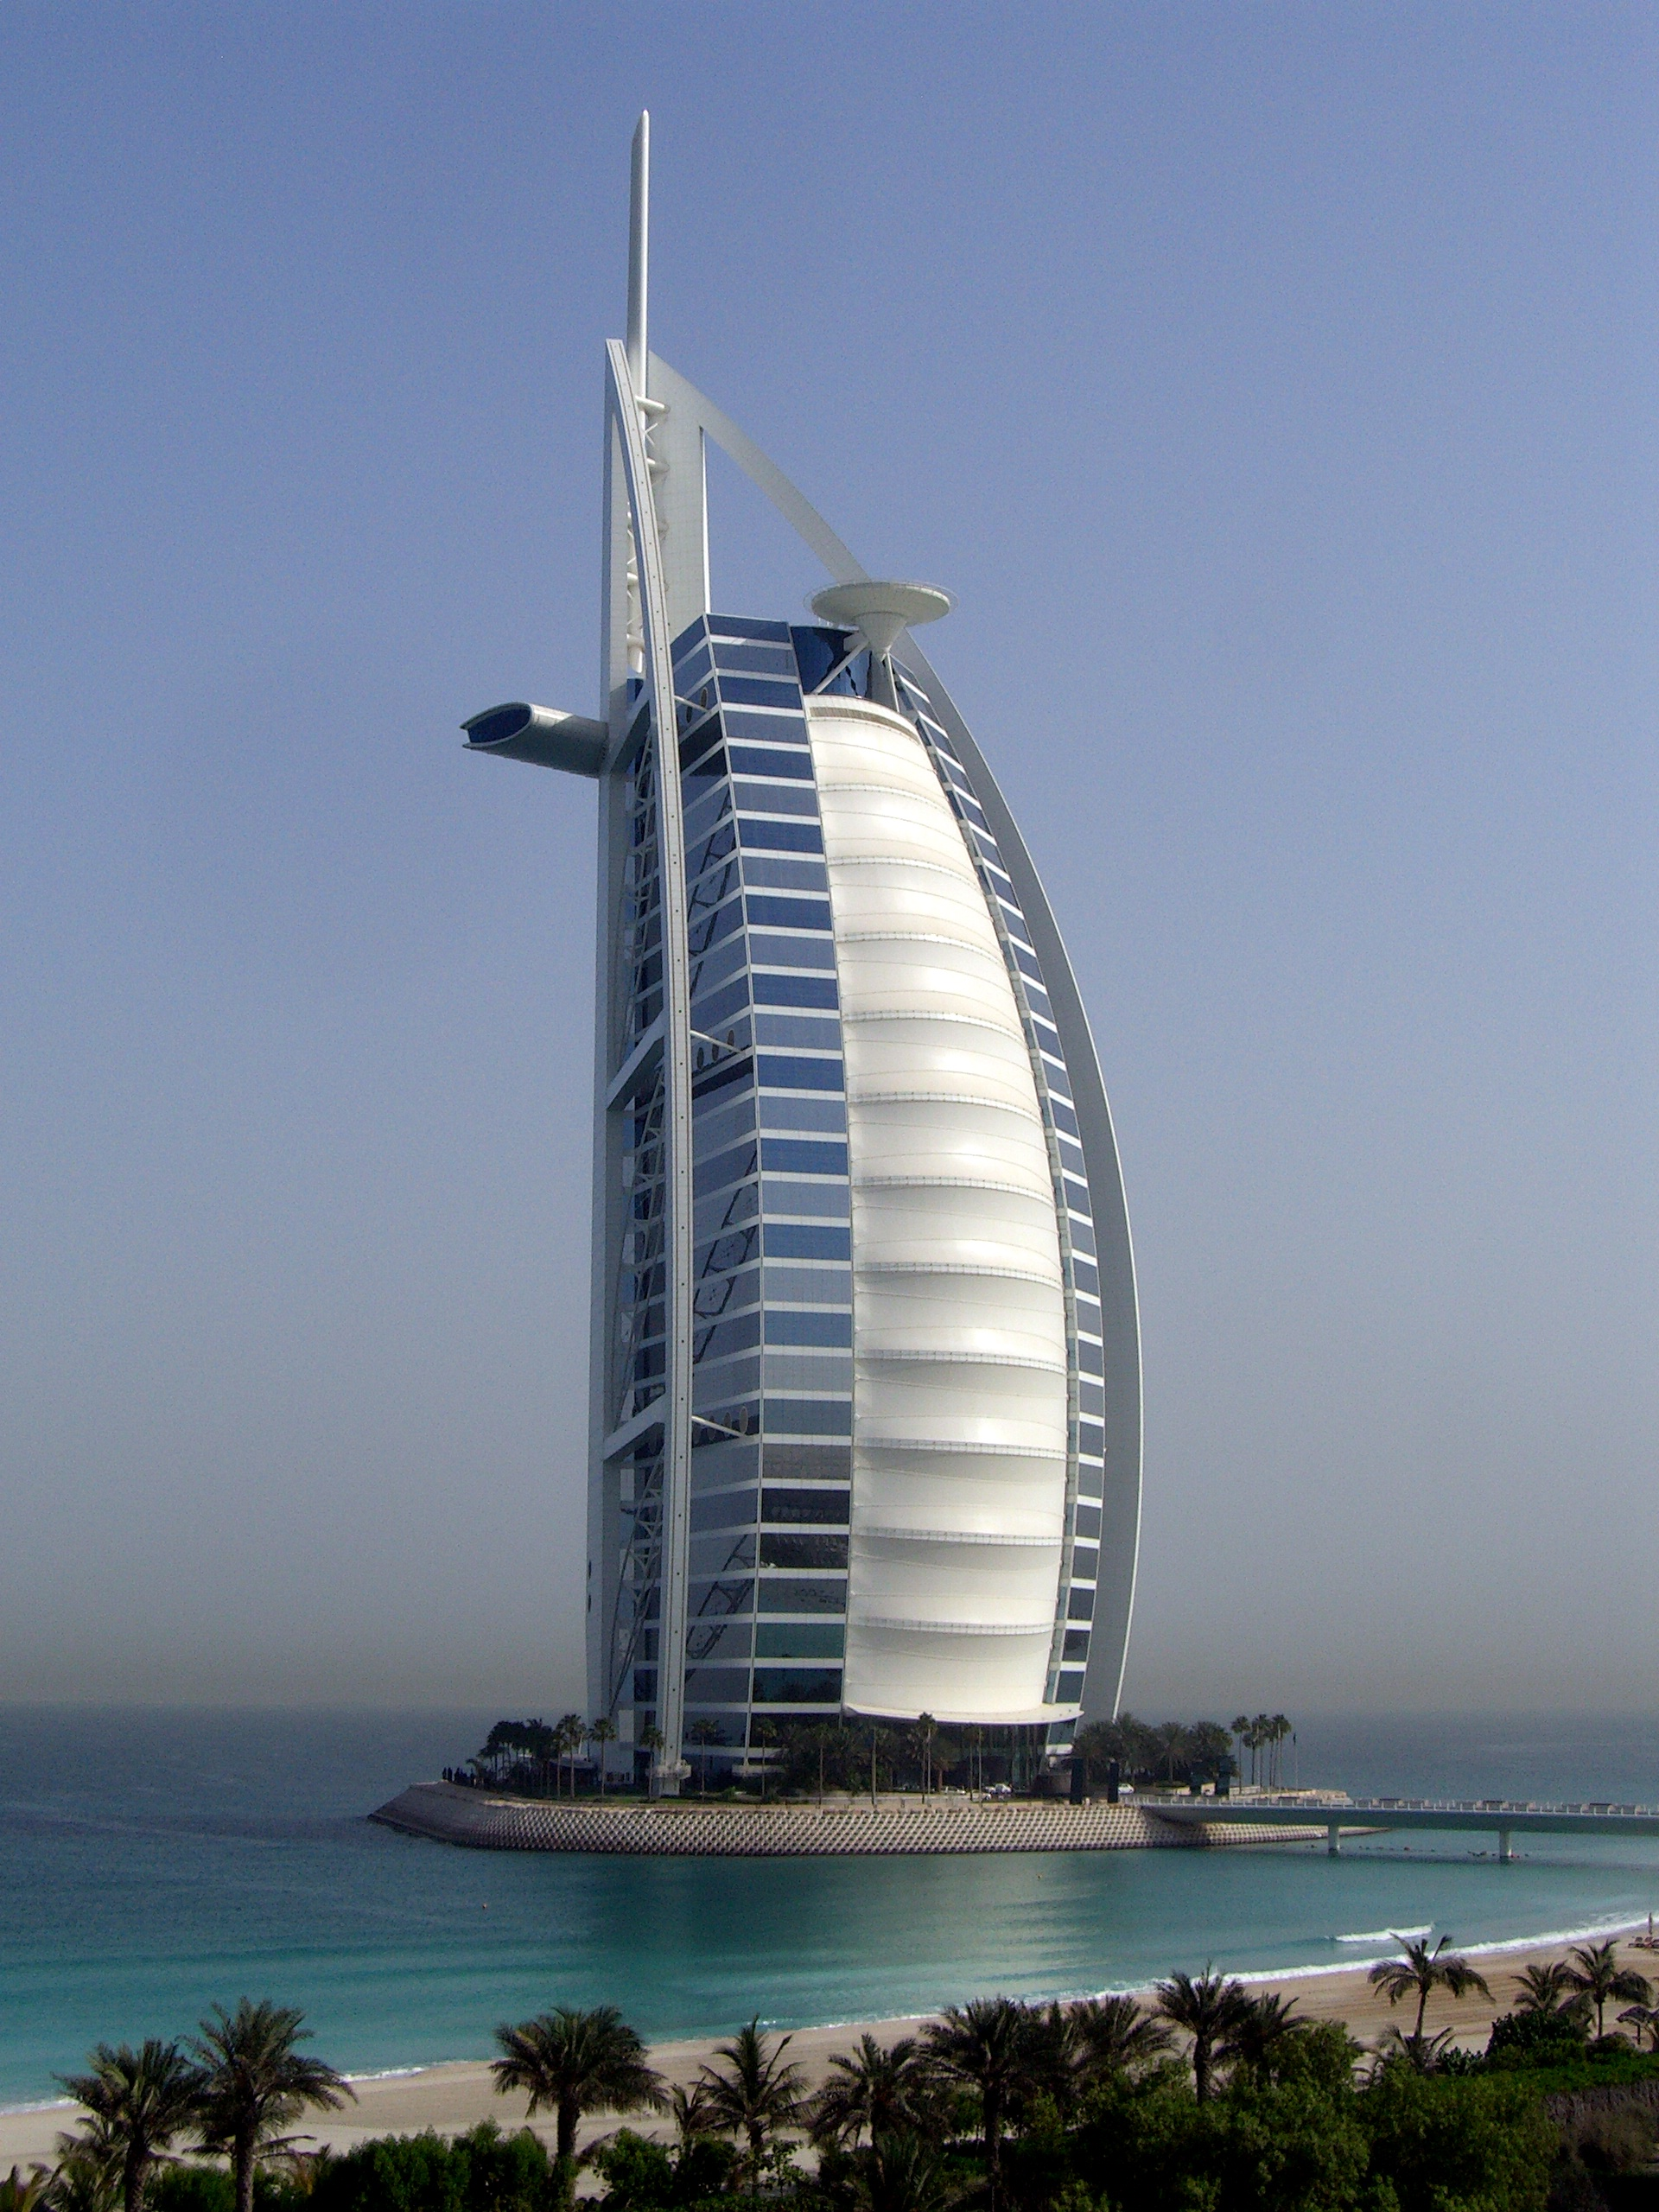 Burj al arab dubai uae thought rot for Dubai world famous hotel